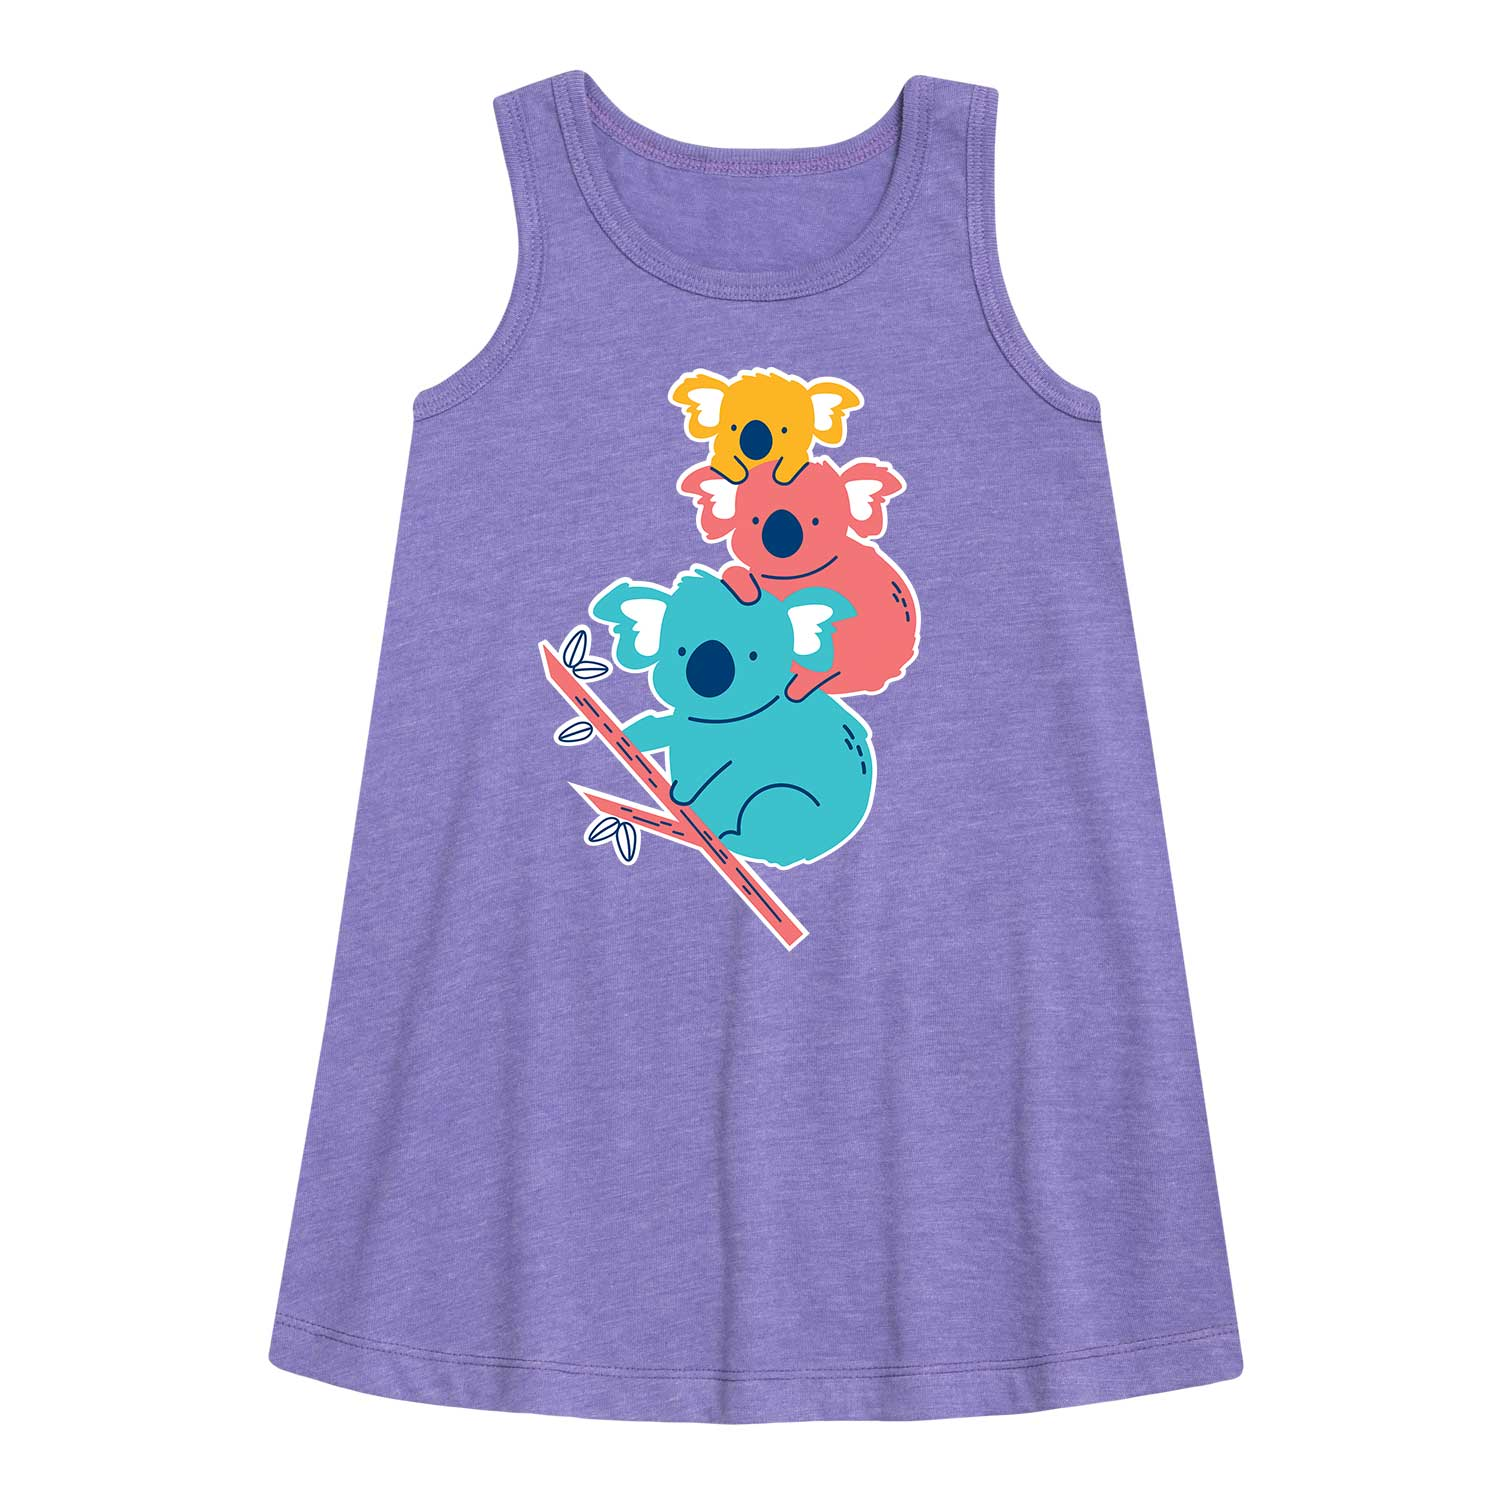 Stacked Koalas - Toddler Girl's A-Line Dress